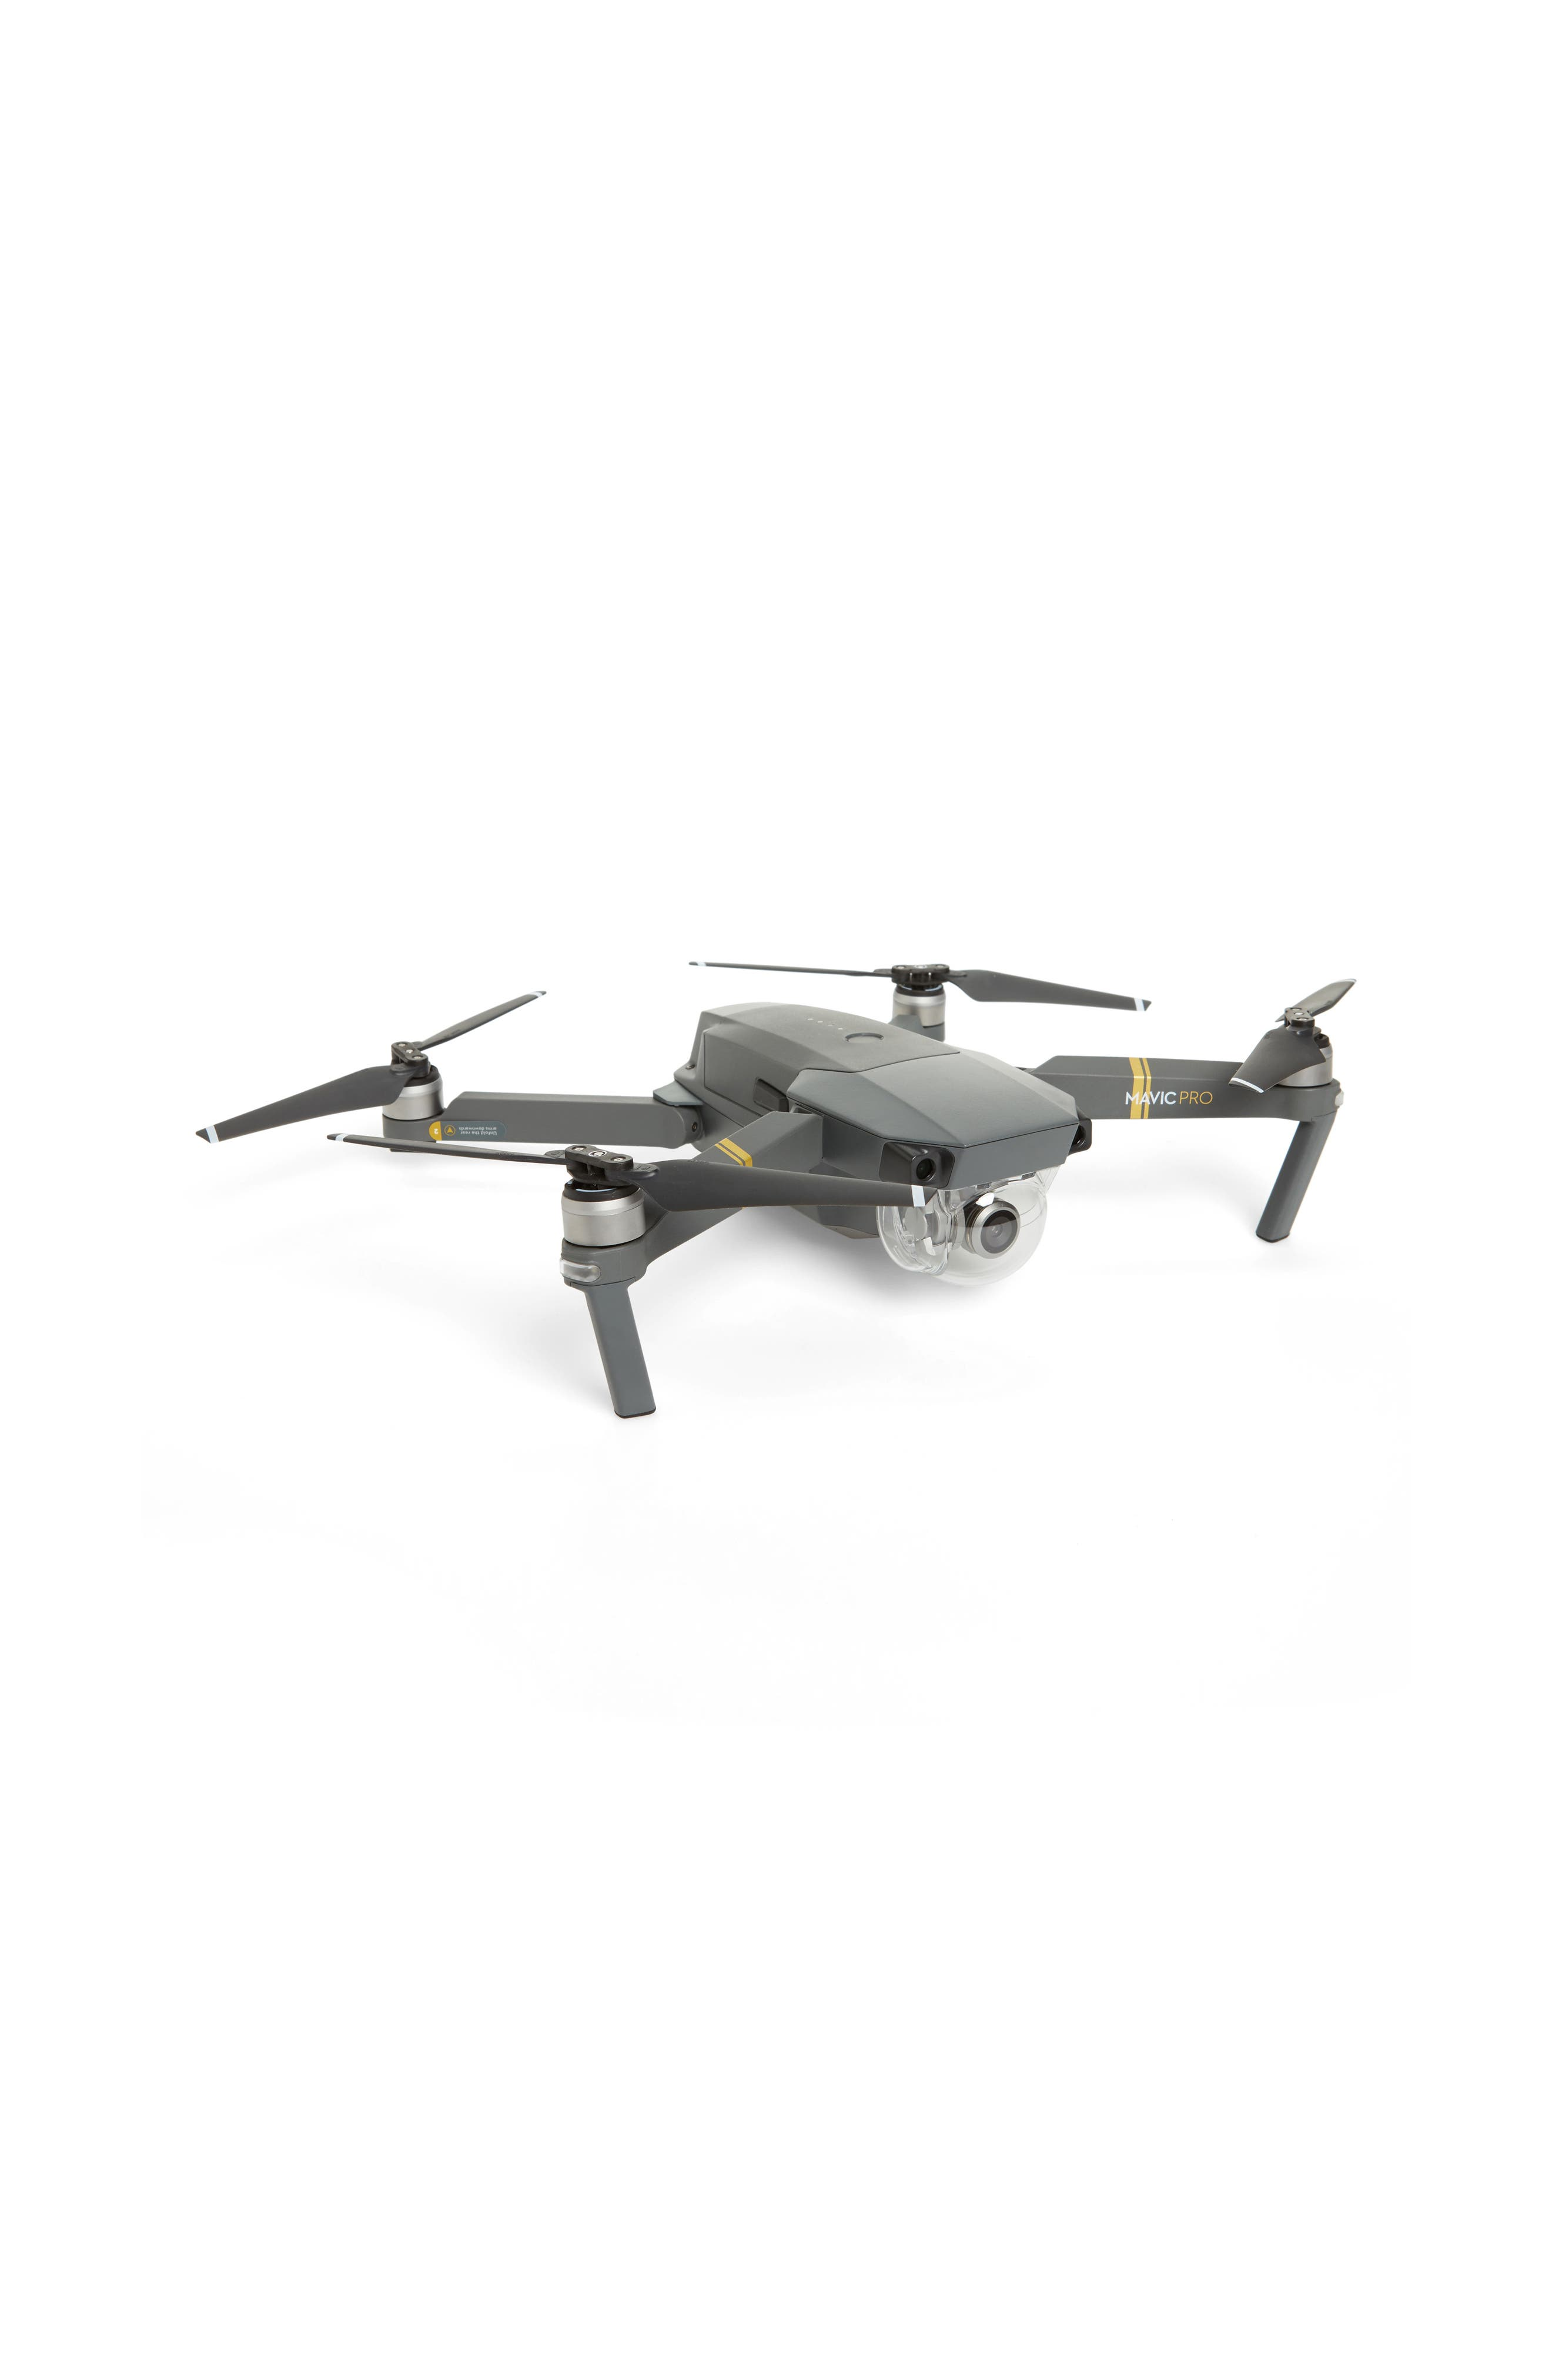 Mavic Pro Fly More Combo Foldable Flying Quadcopter,                             Main thumbnail 1, color,                             Grey